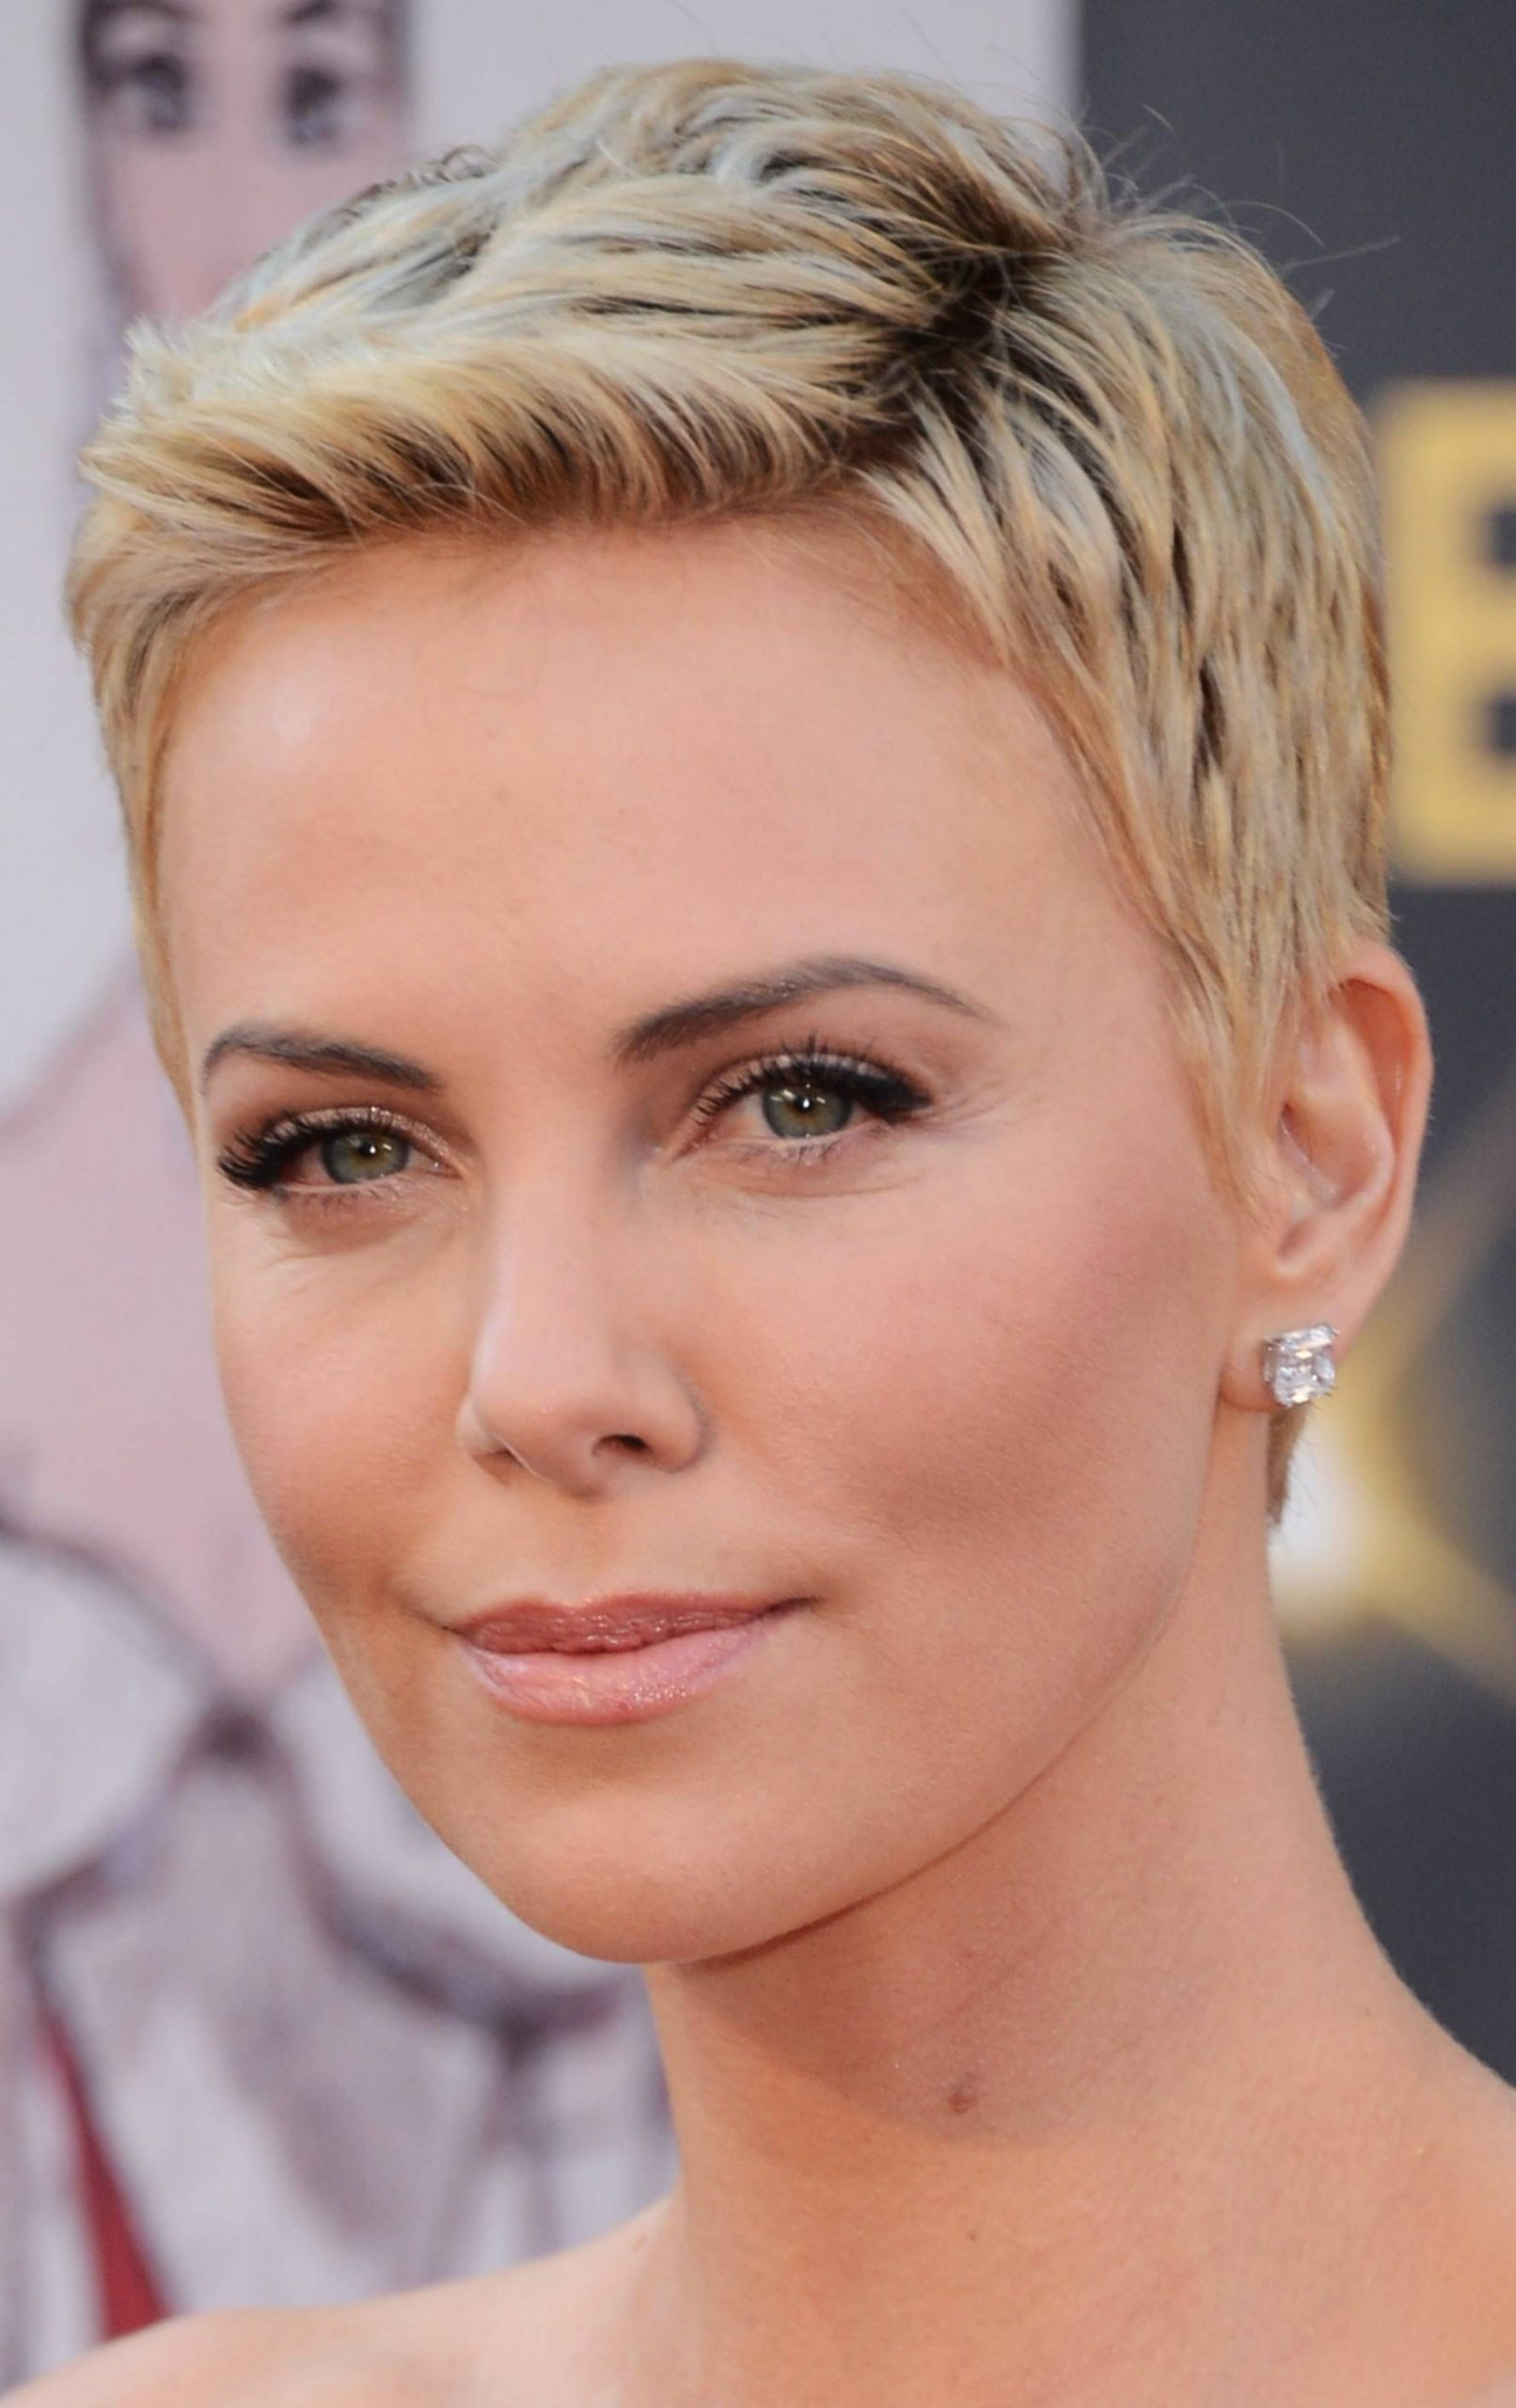 10 Flattering Hairstyles For Oval Faces Oval Face Hairstyles Short Haircuts For Oval Faces And Thin Hair